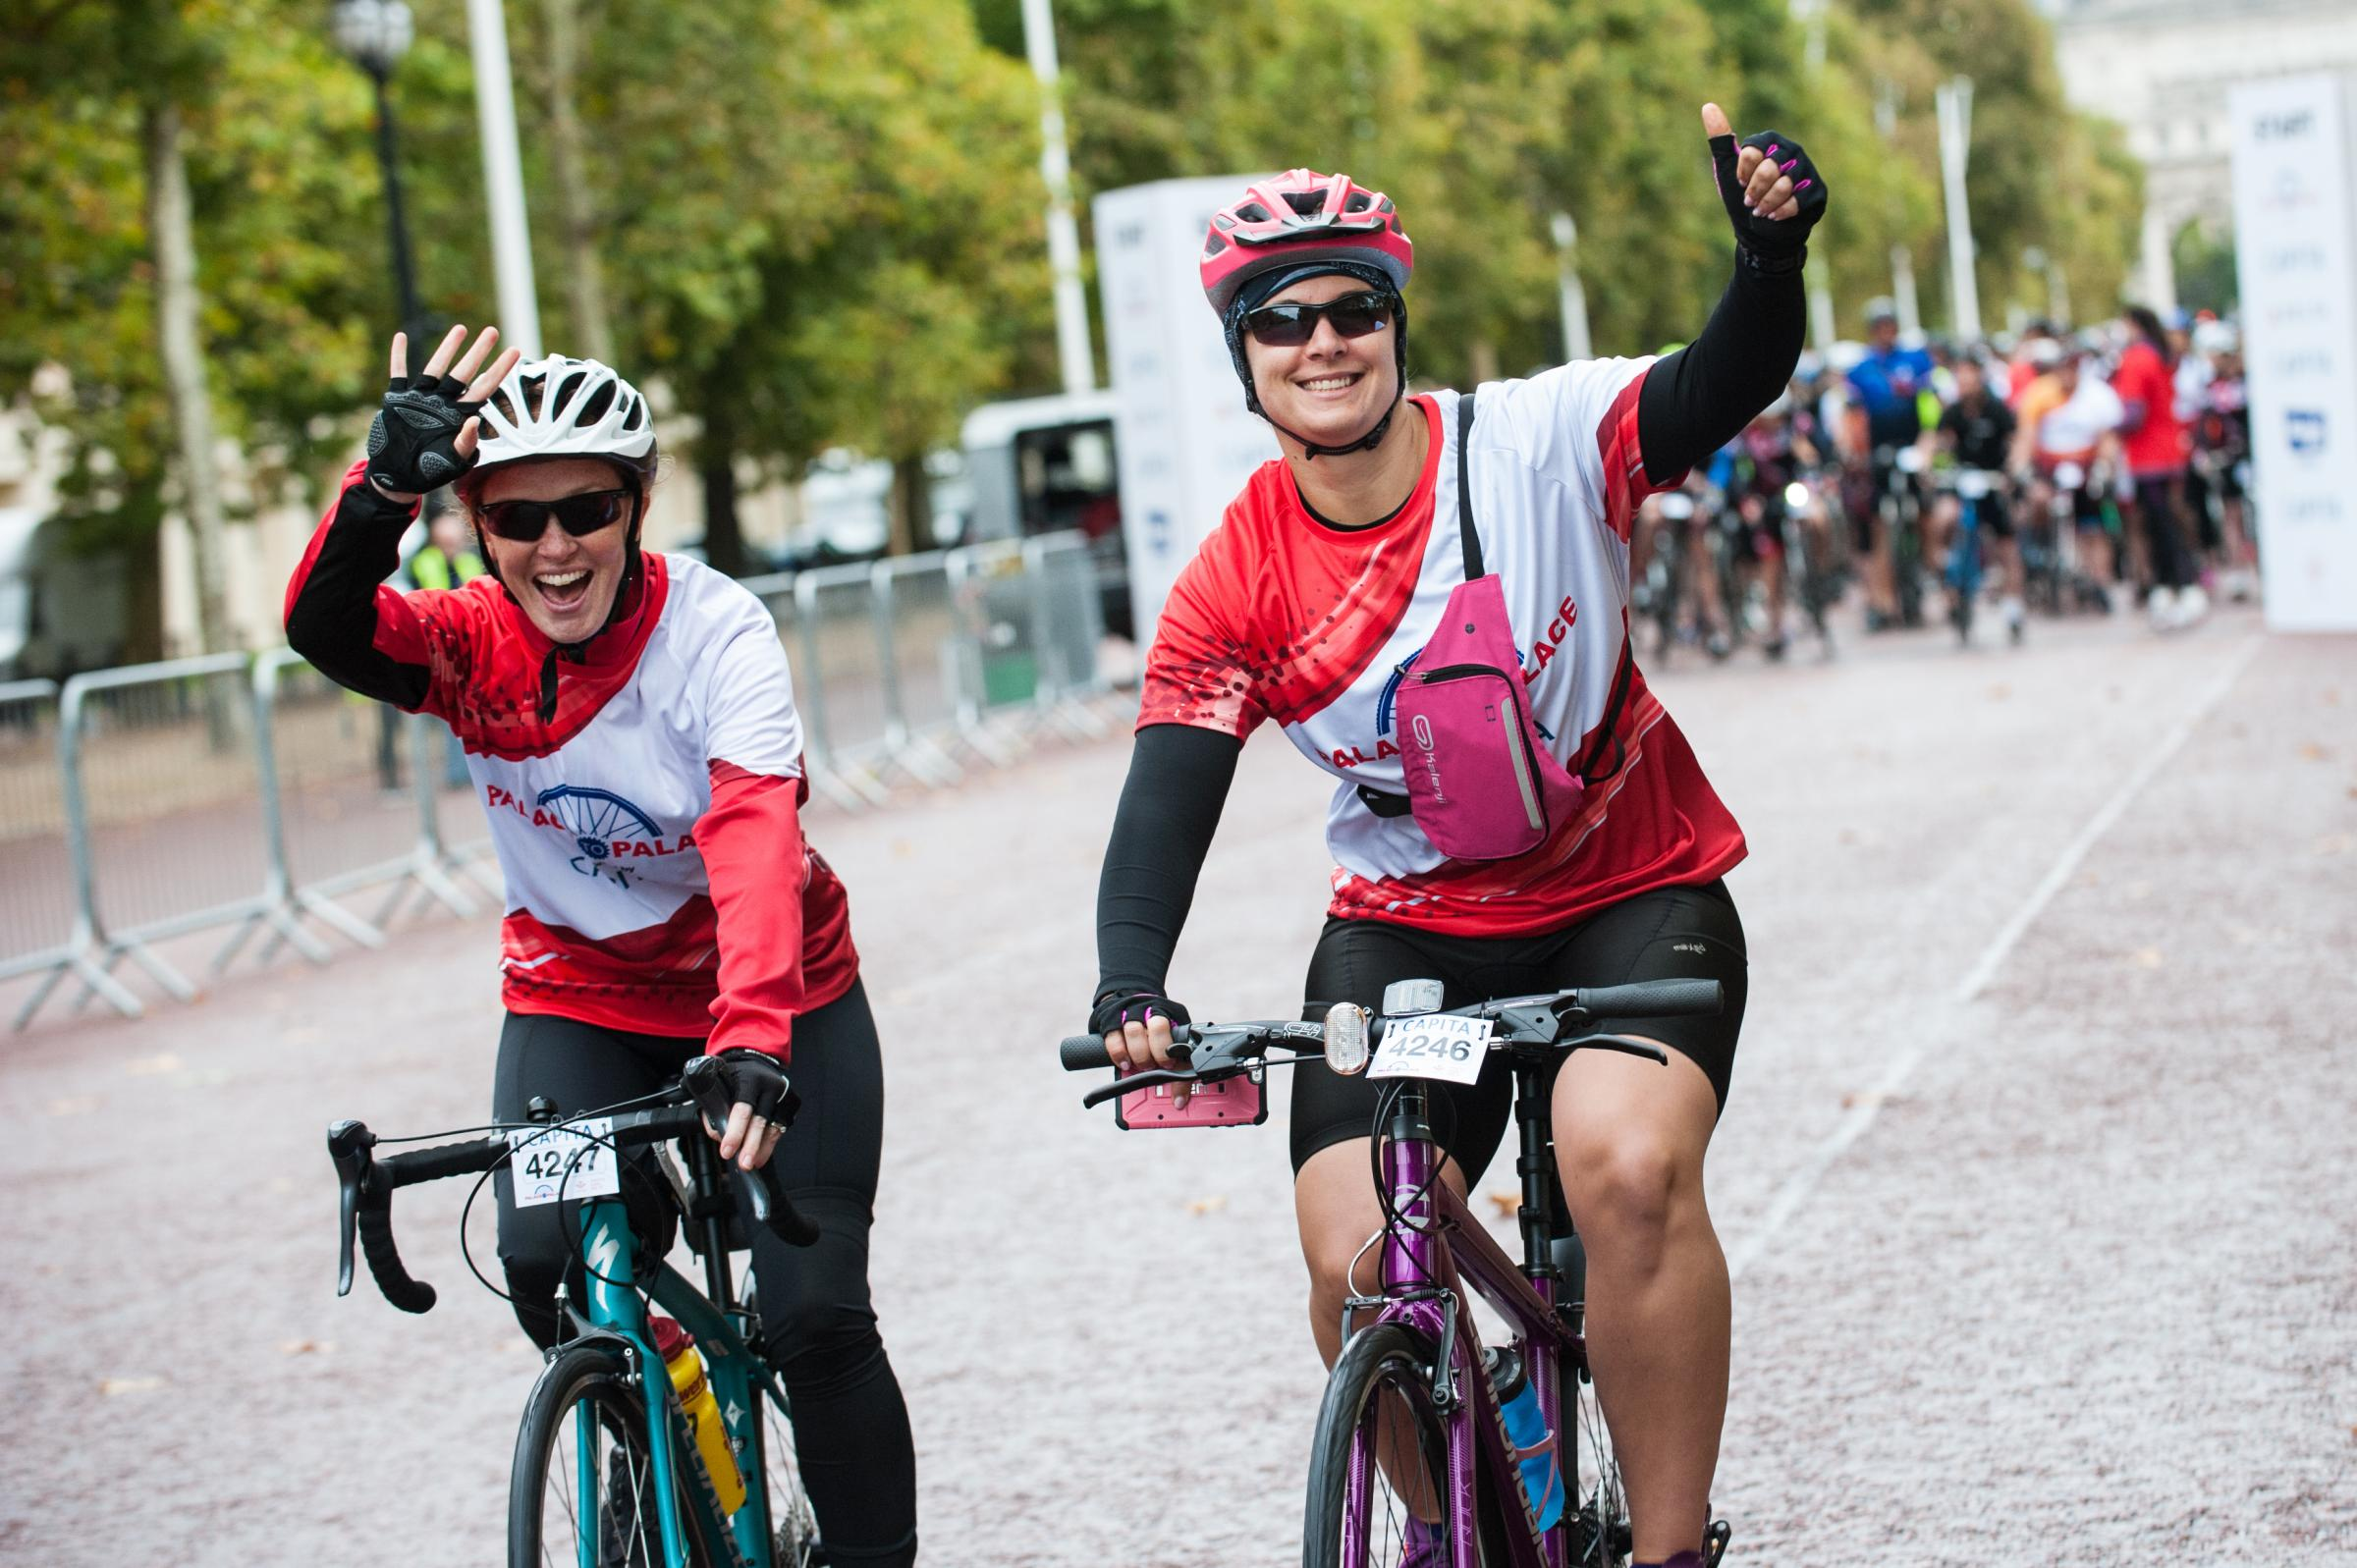 The one of a kind route will take riders through London into Richmond and through the Surrey countryside